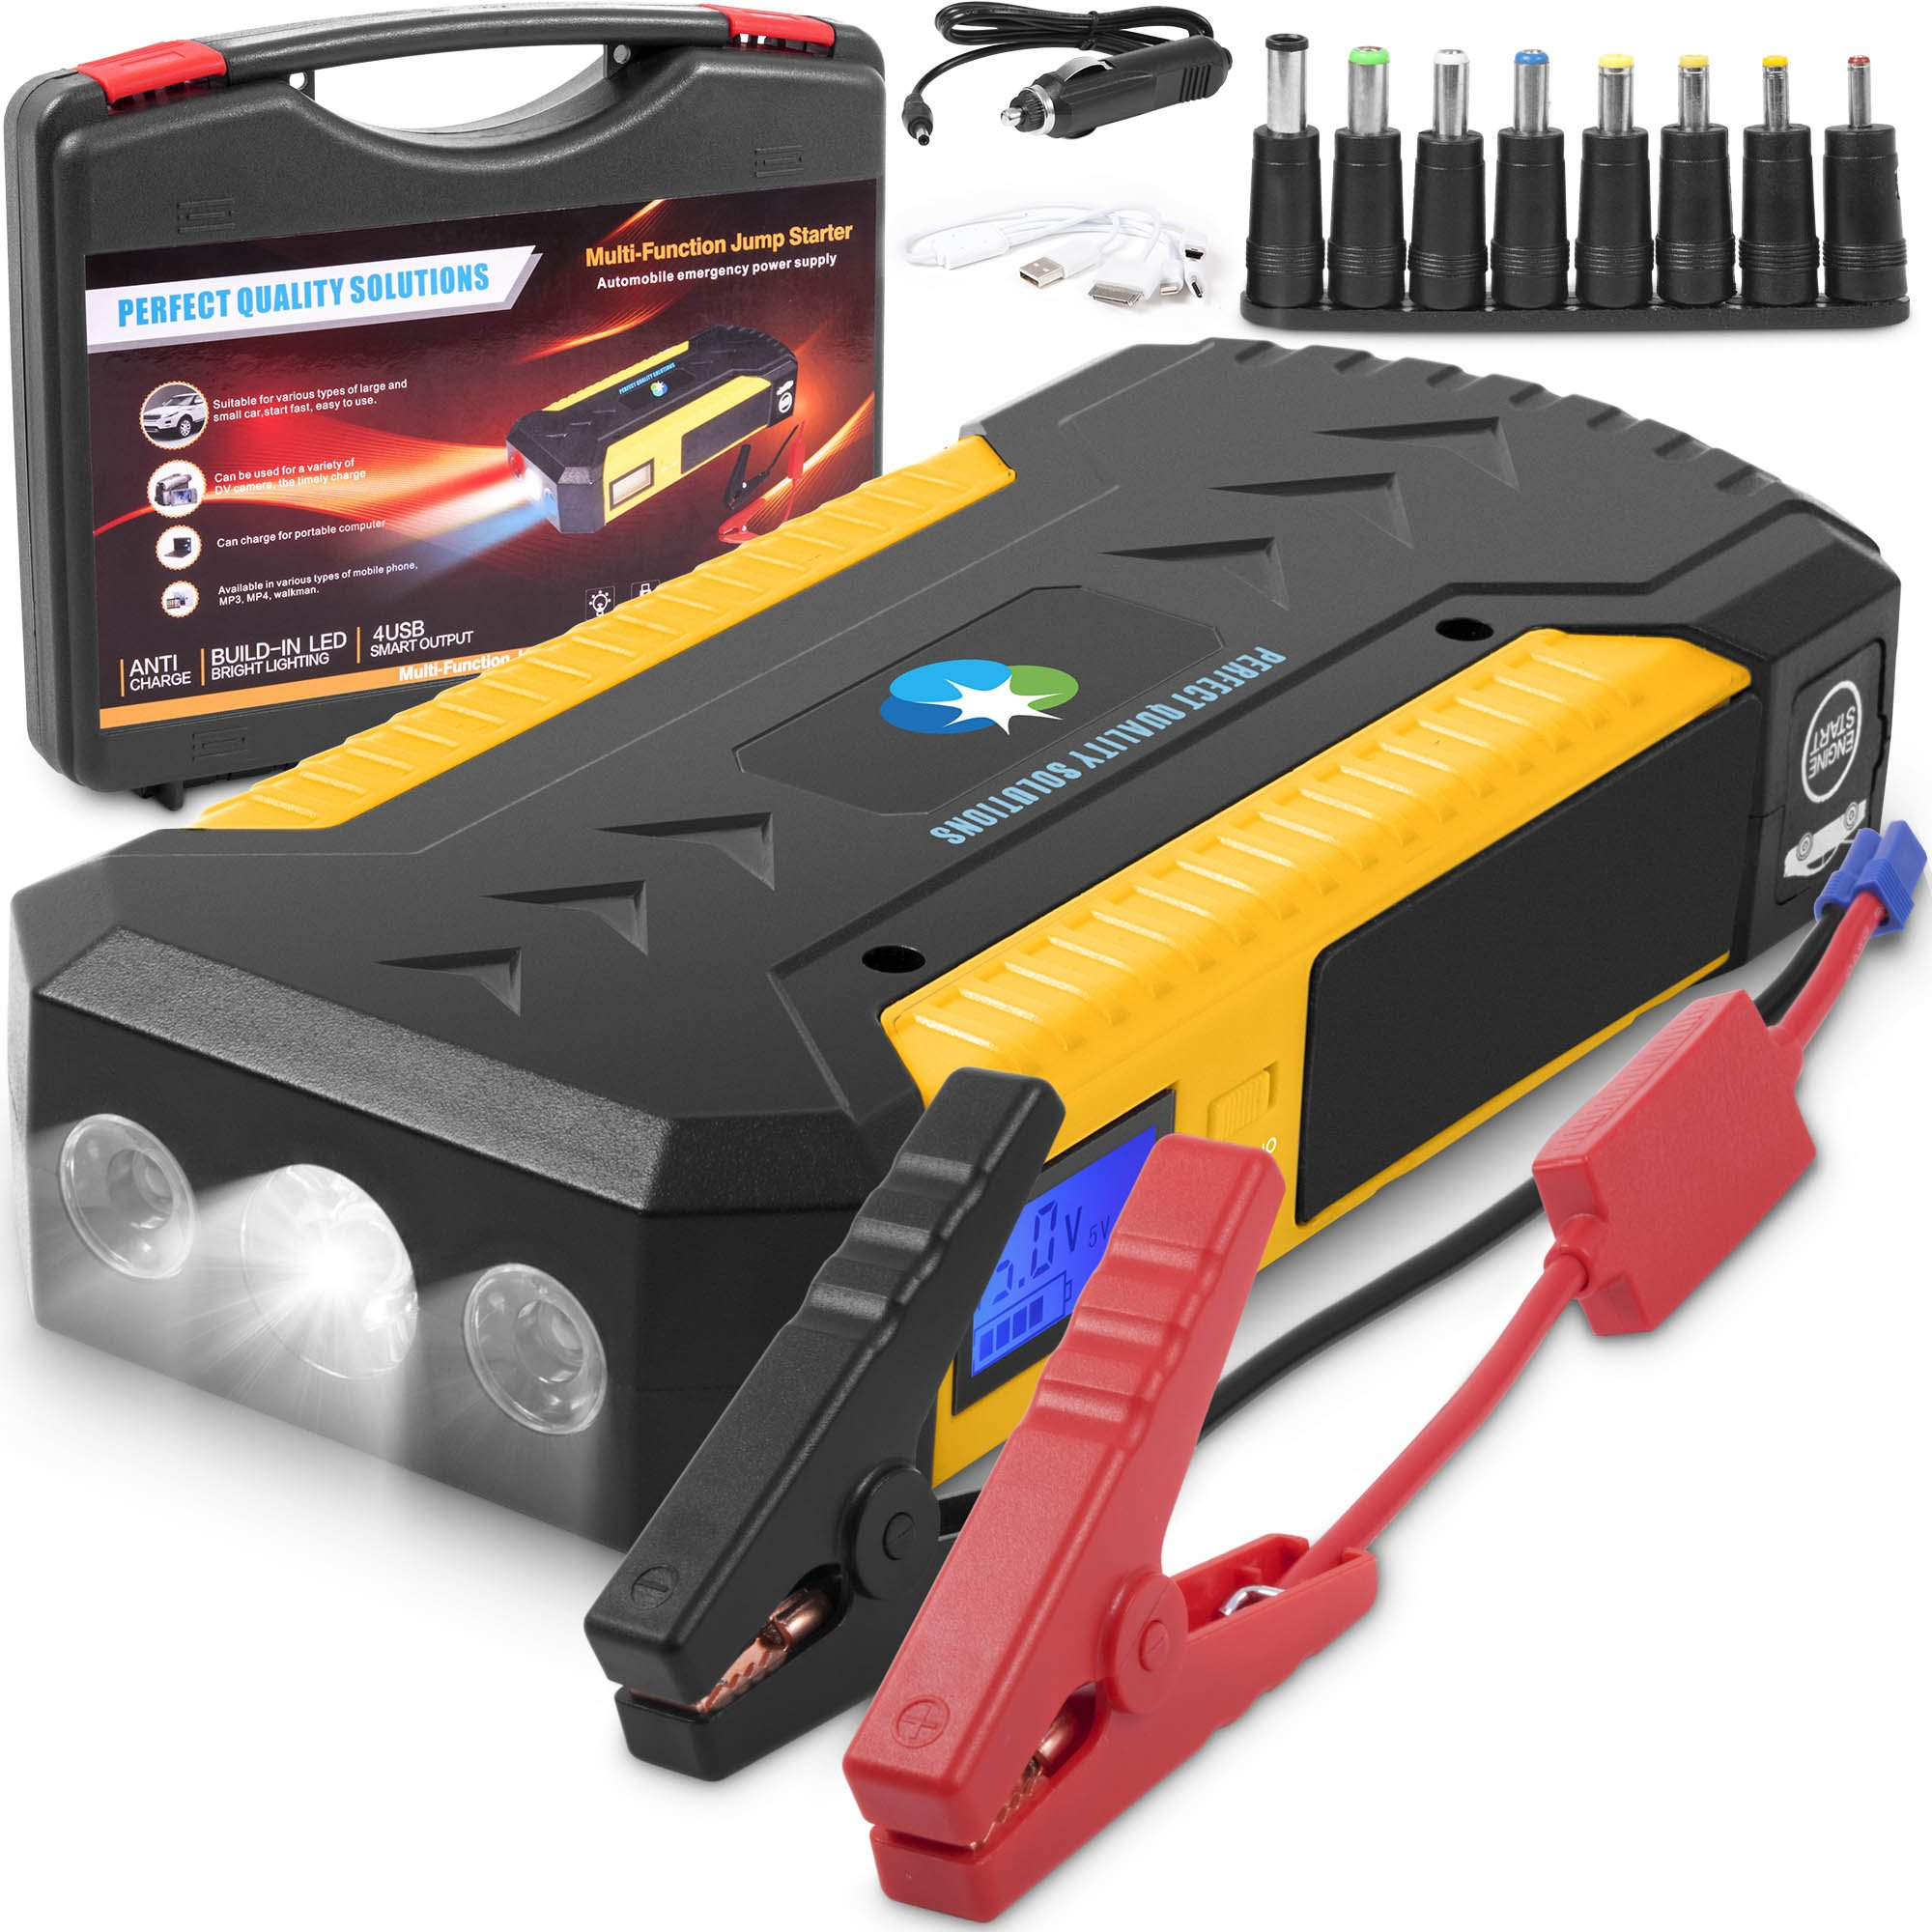 Battery Jumper Charger Pack with Cables: Jump Start any Car or Automotive Vehicles.Portable Starter 12V 18000 mAh Power Box 800 A Peak for Auto and Motorcycle Jumpstart.Batteries Emergency Booster Kit by PERFECT QUALITY SOLUTIONS